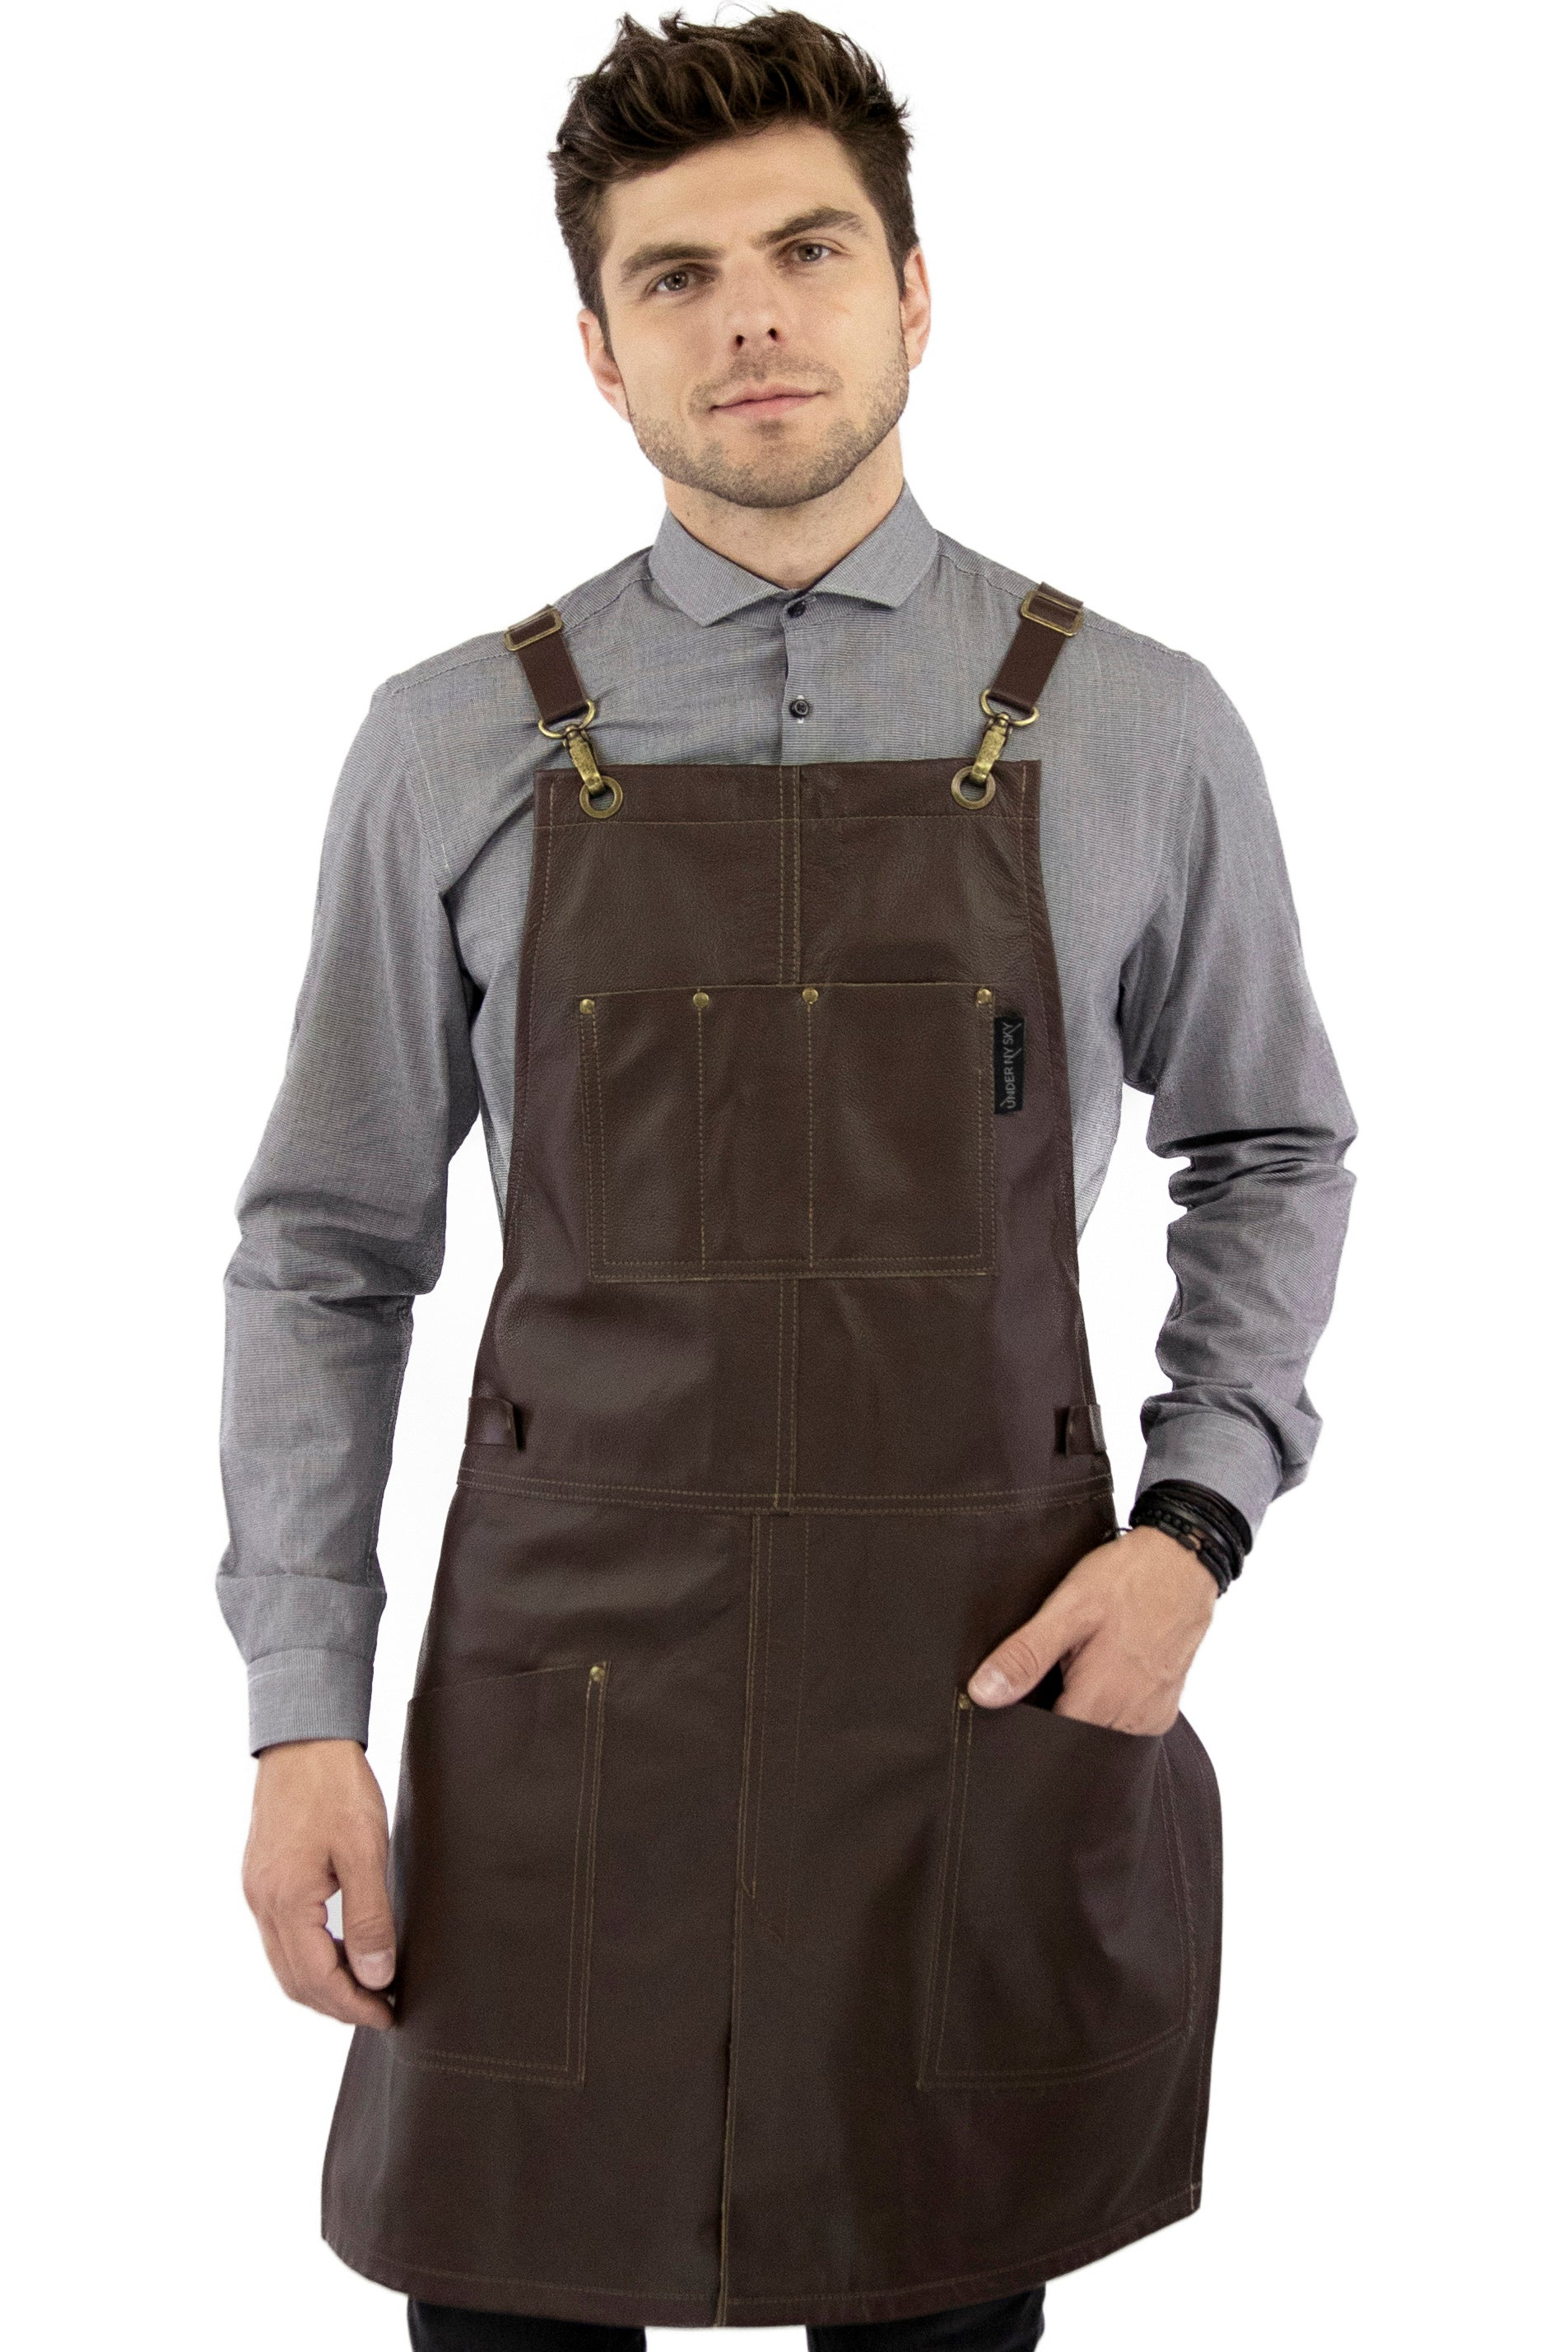 Leather Apron - Real Brown Leather